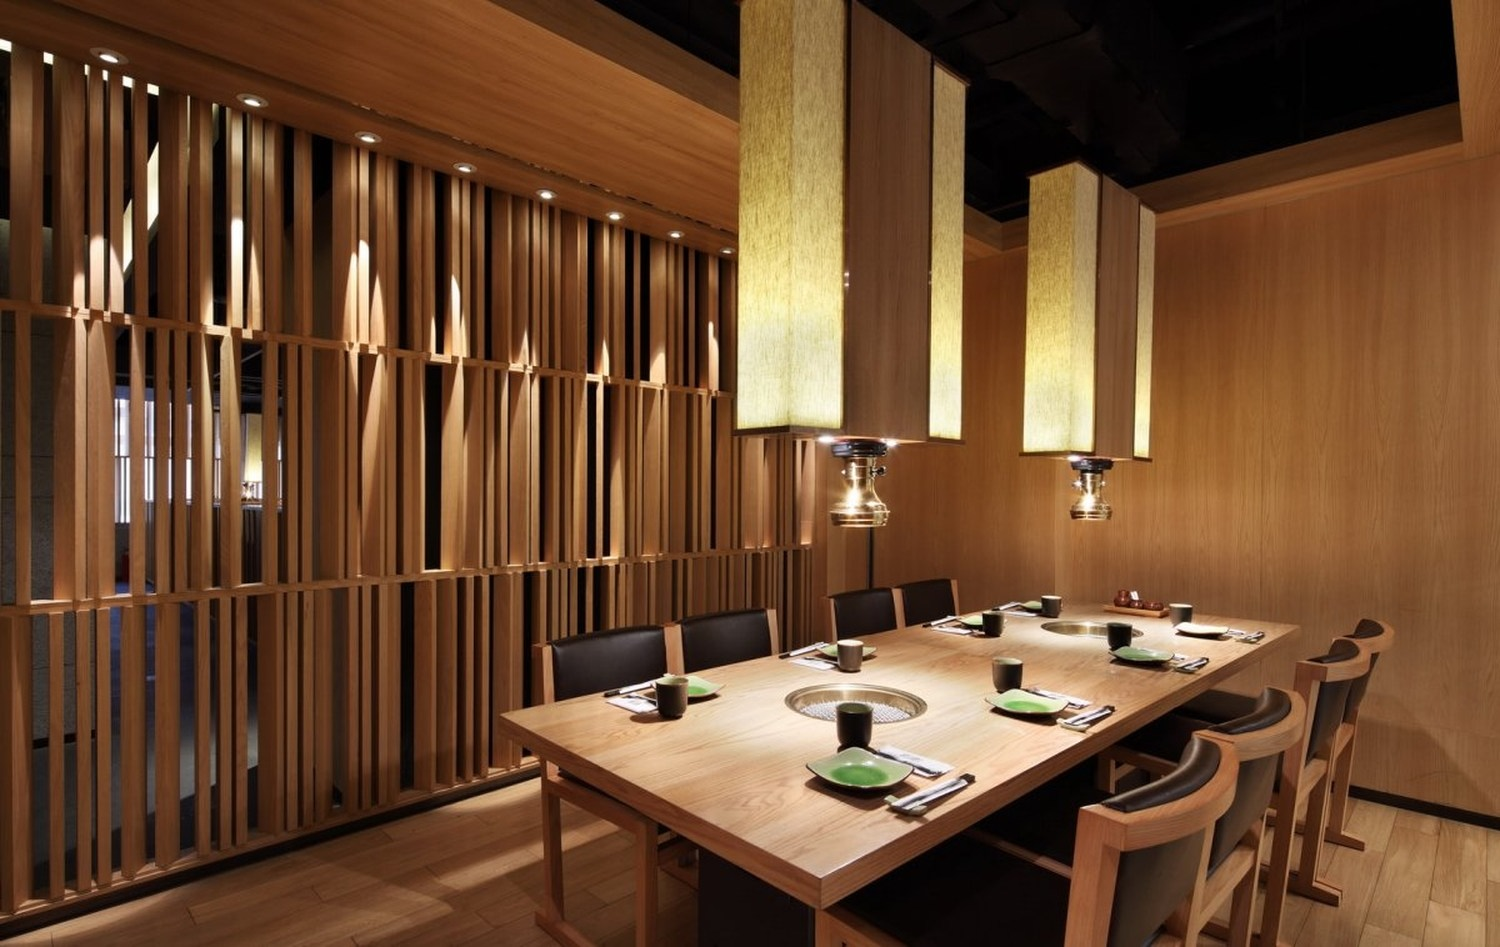 Restaurant Interior Pdf : Matsumoto restaurant by golucci international design